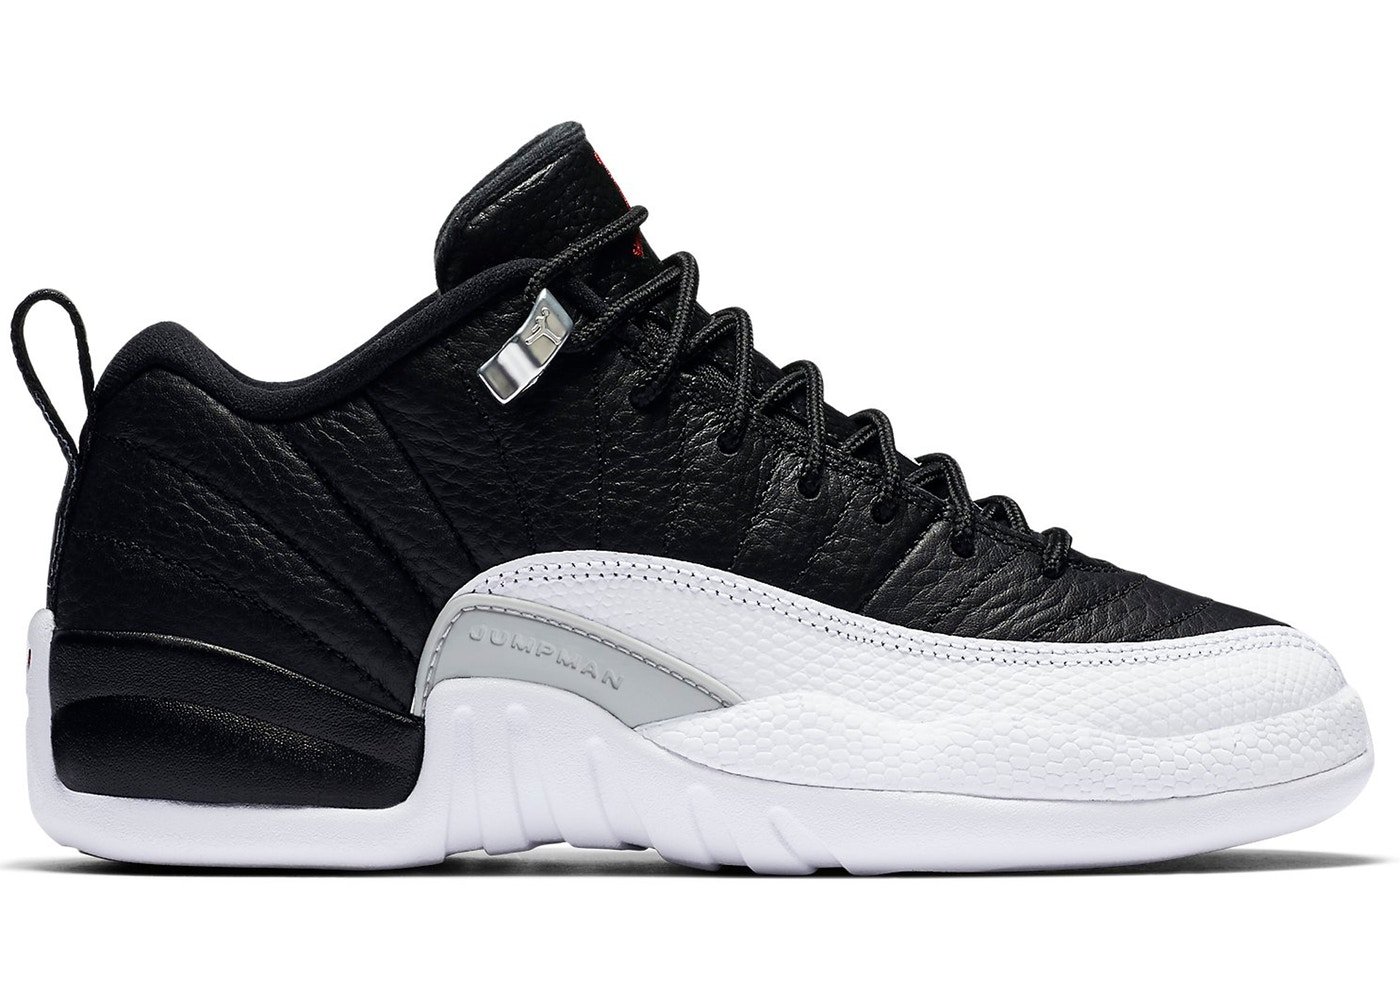 c0f40e5bbc951d Jordan 12 Retro Low Playoffs (GS) - 308305-004